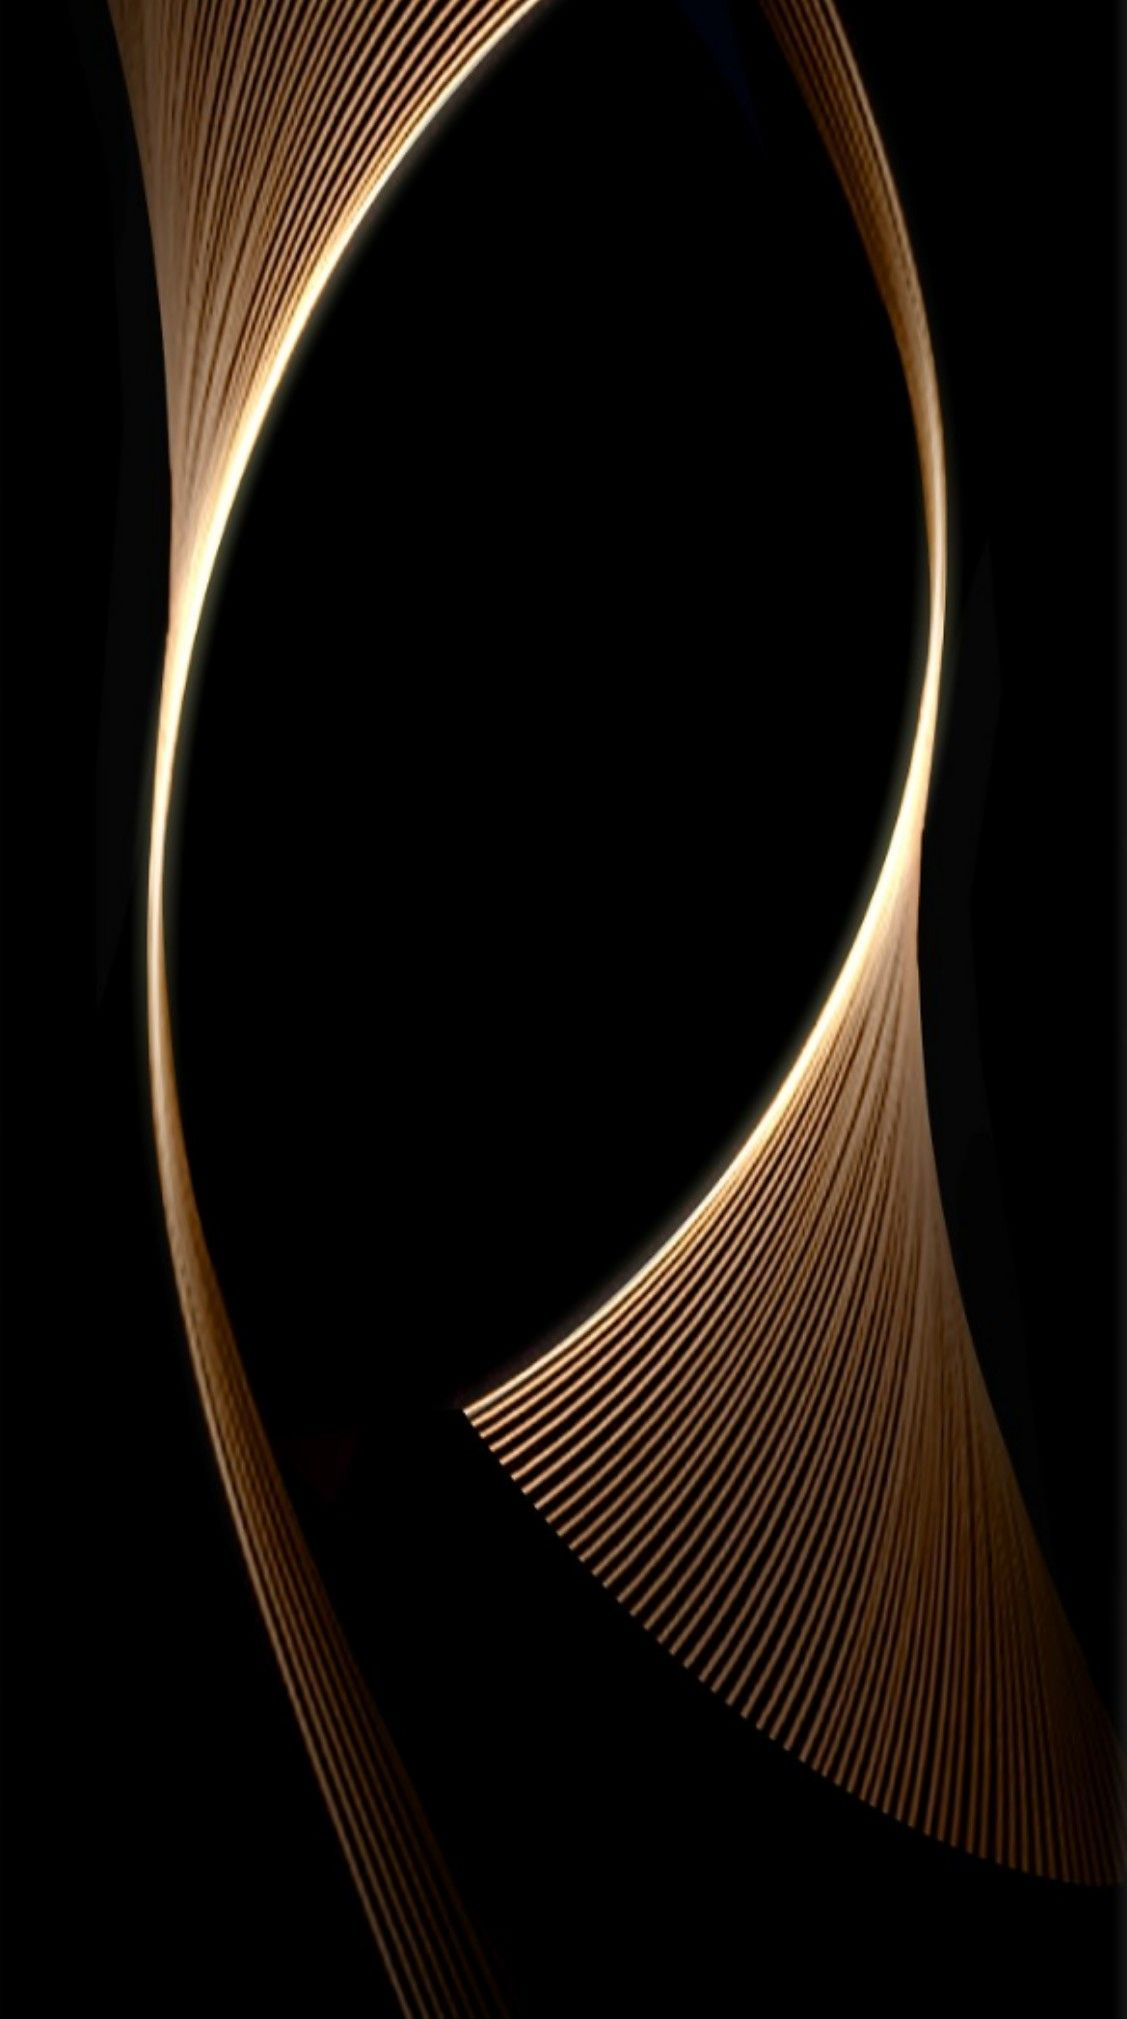 Amoled Gold And Black Wallpapers - Wallpaper Cave